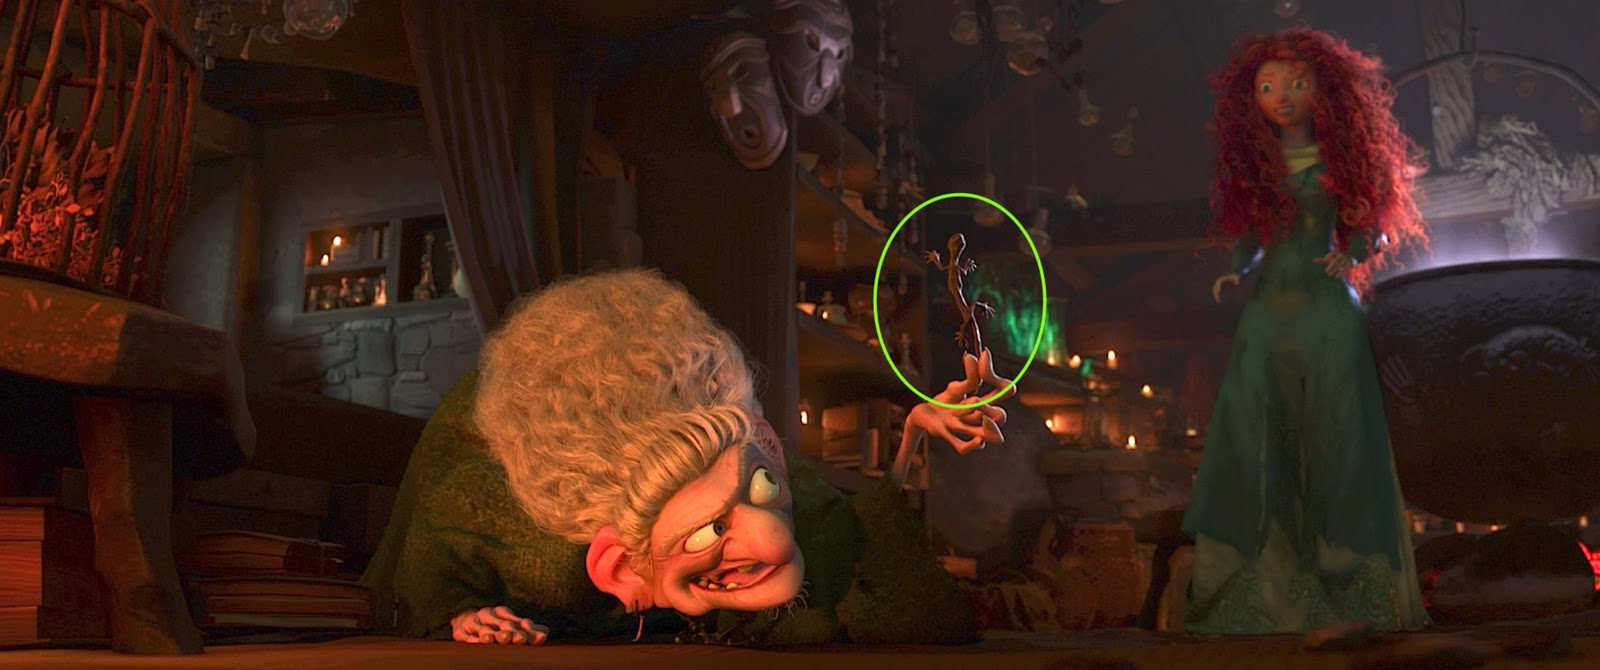 Hidden Items in Brave - The Pixar Ball & A113 | Pixar Post